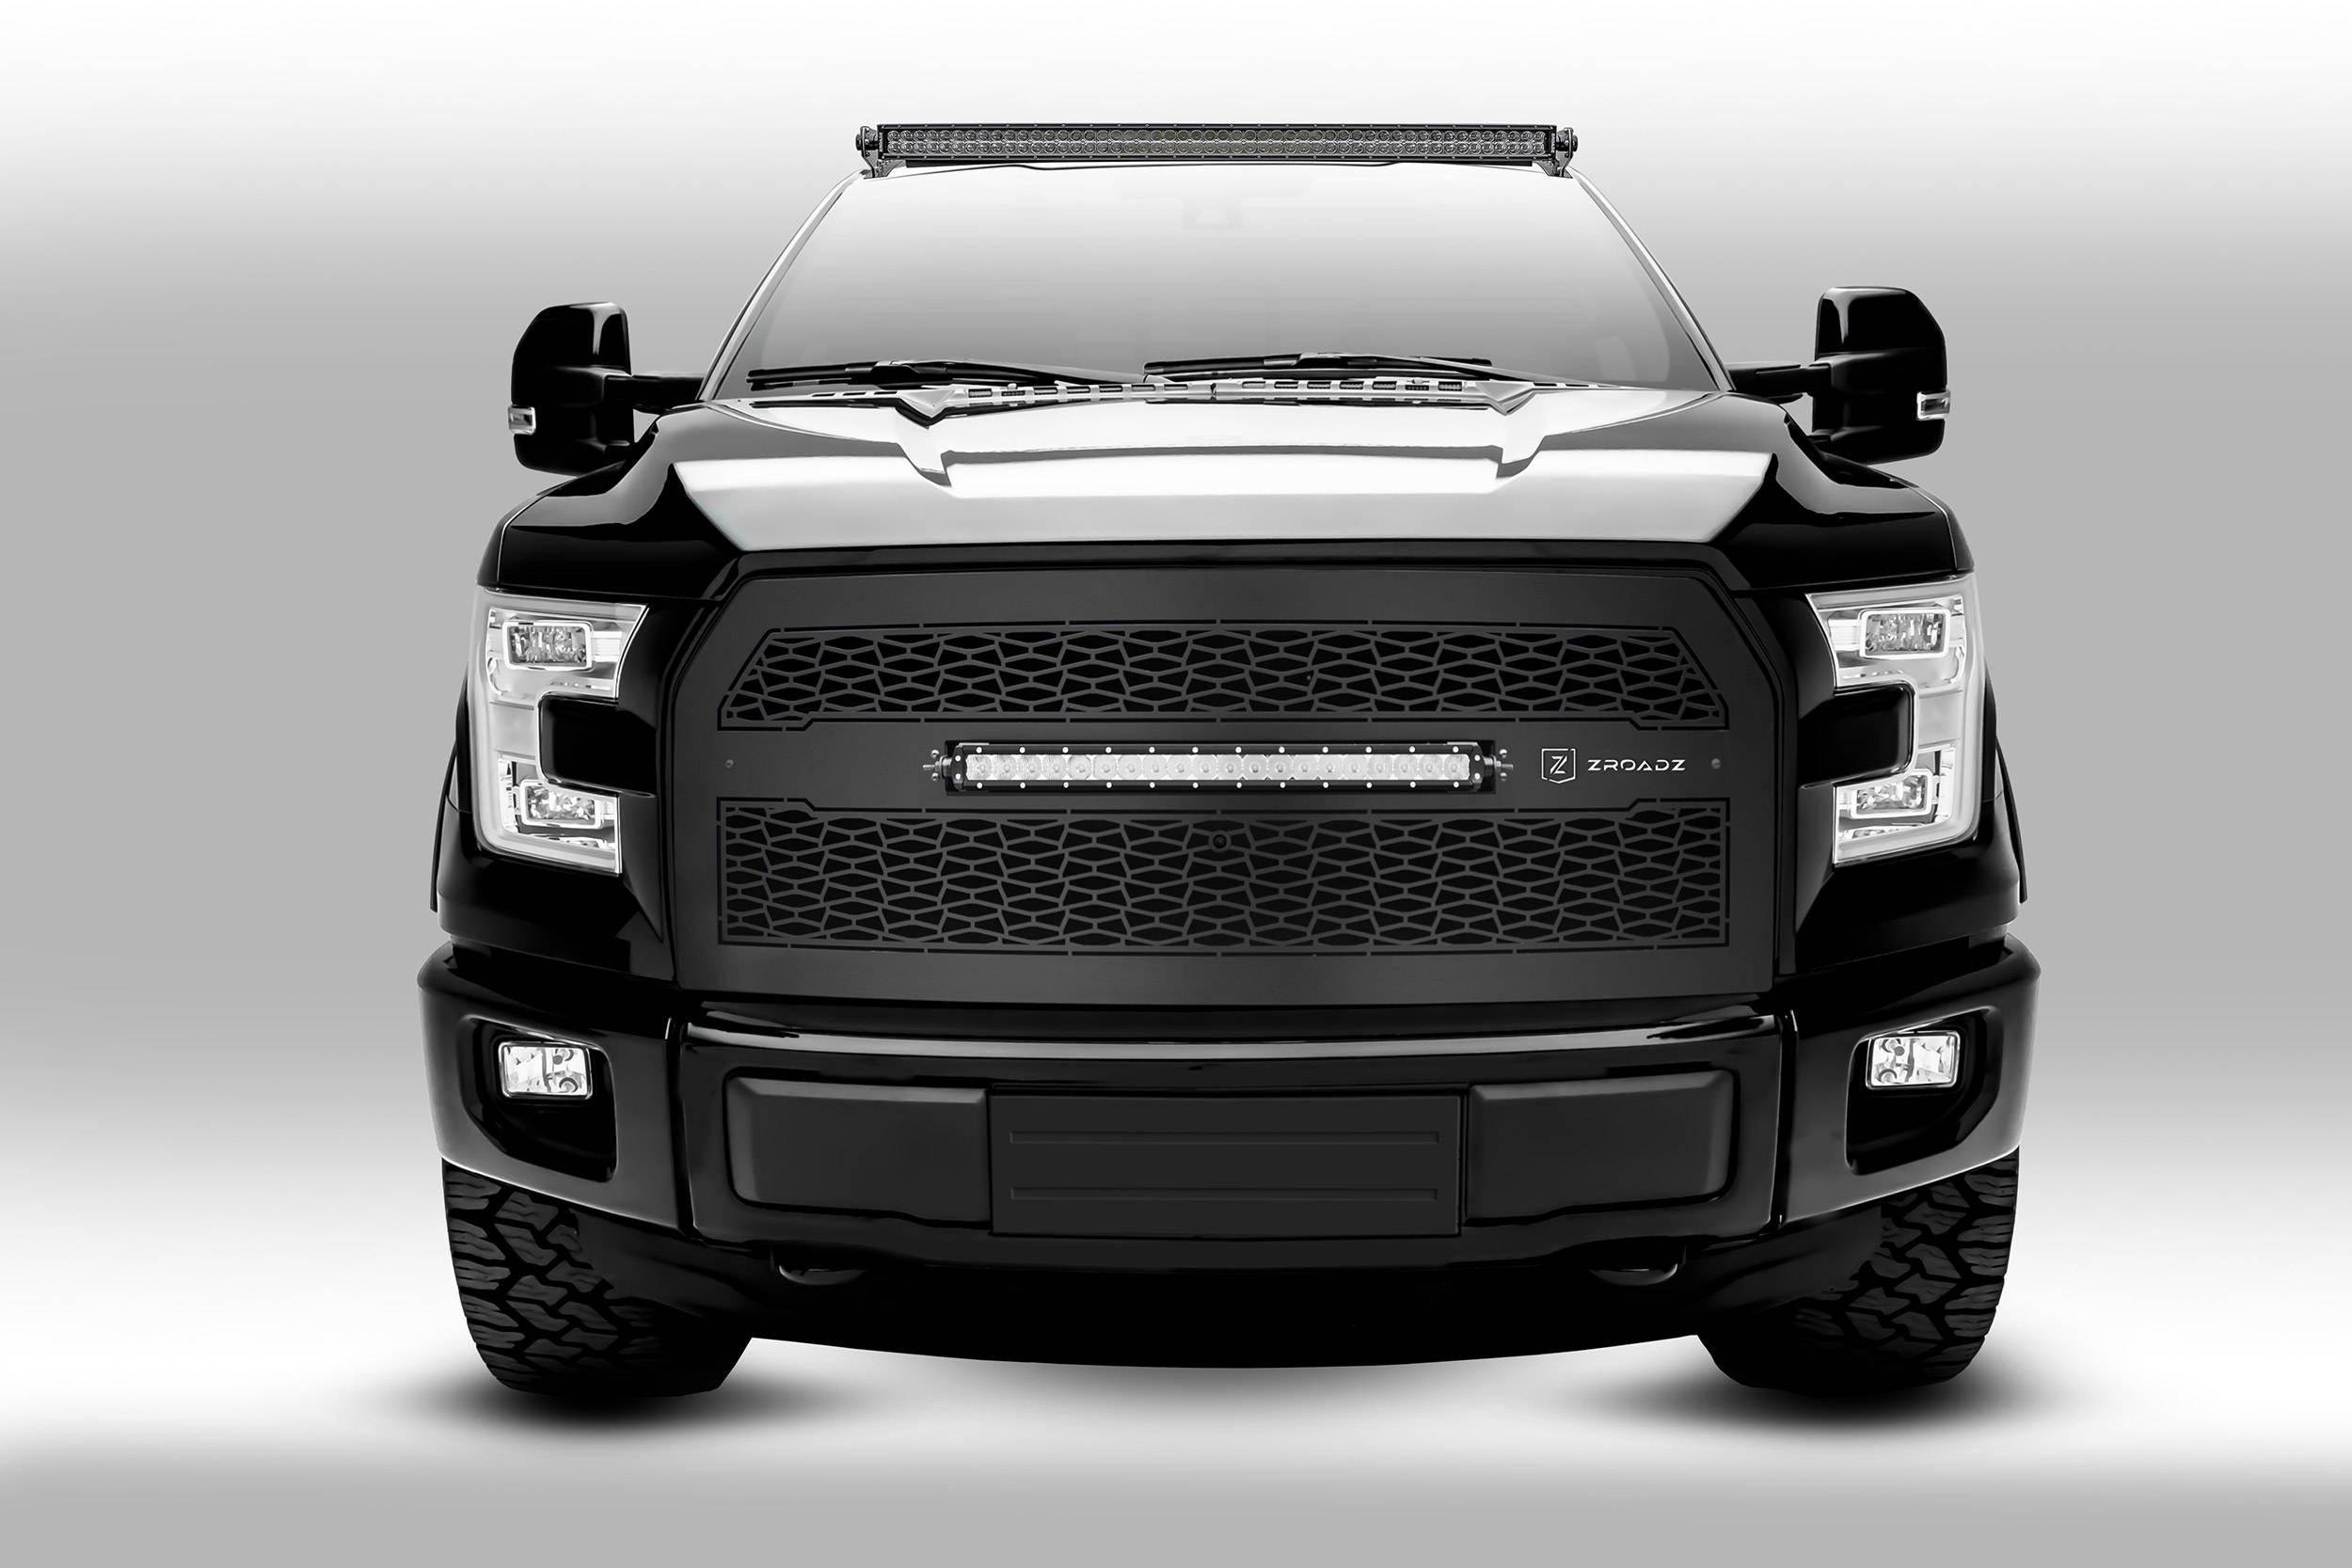 ZROADZ                                             - 2015-2020 Ford F-150 Front Roof LED Kit, Incl. 50 Inch LED Curved Double Row Light Bar - PN #Z335731-KIT-C